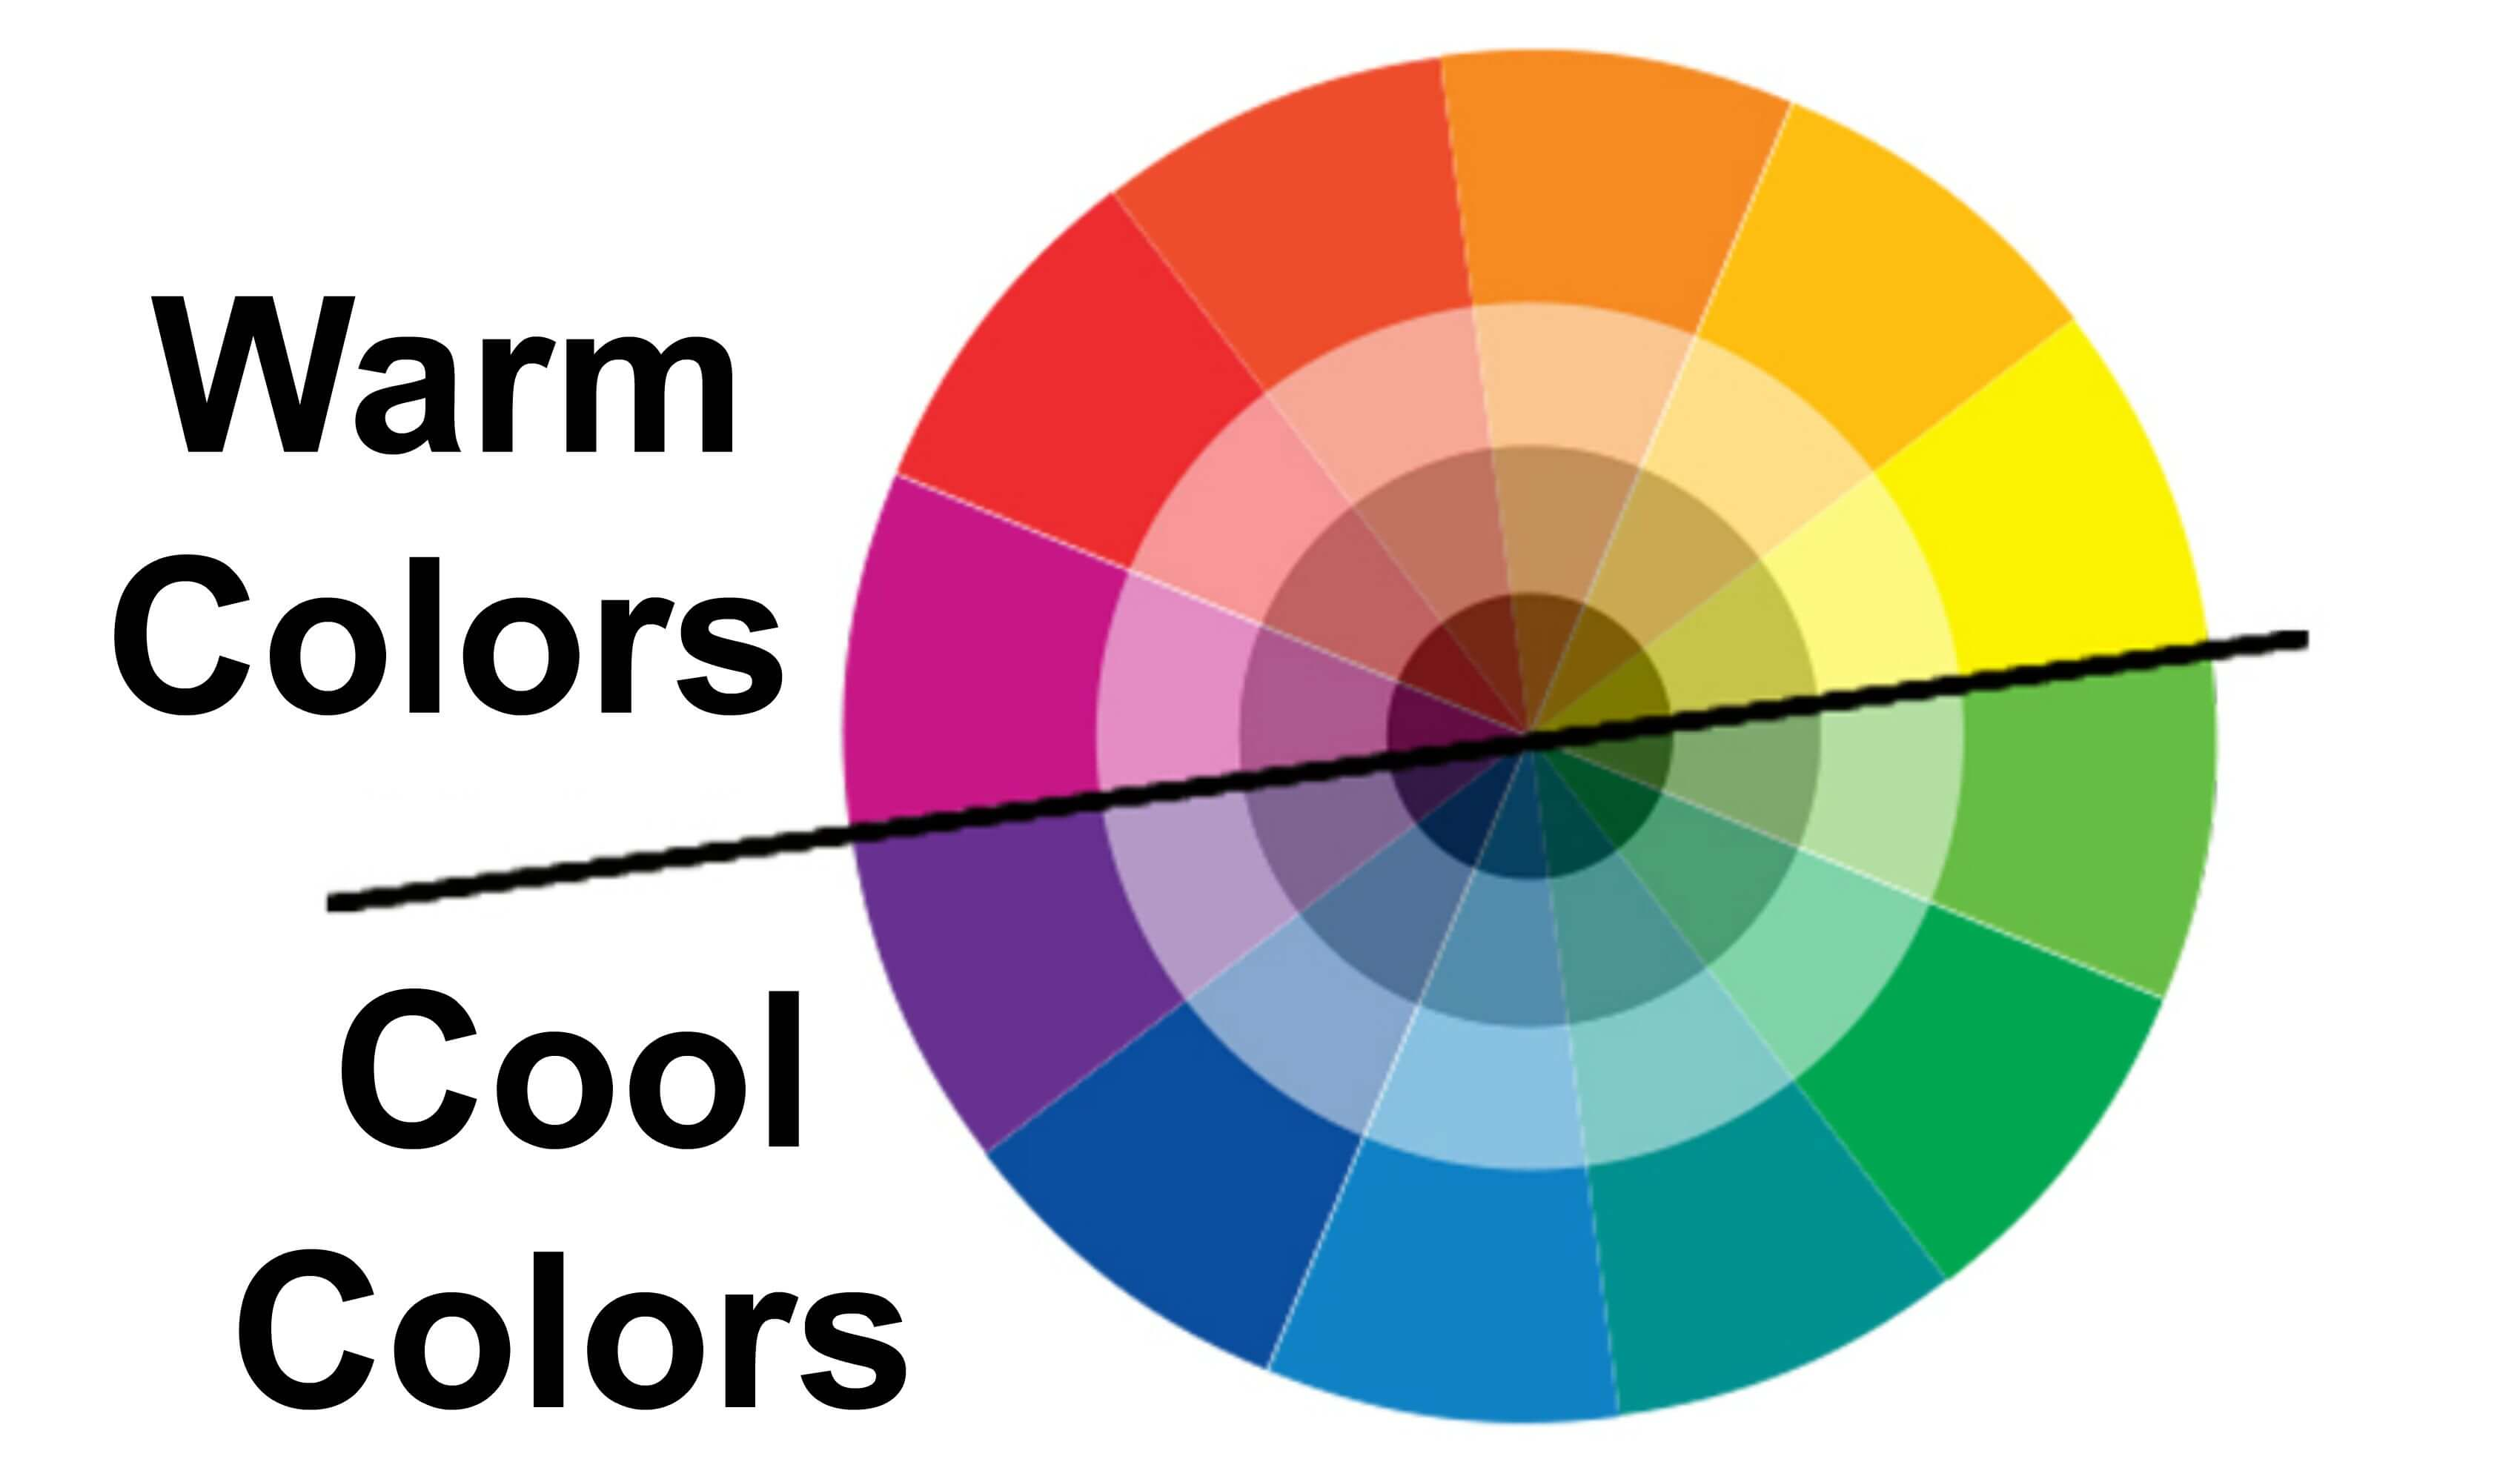 How do warm colors and cool colors differ